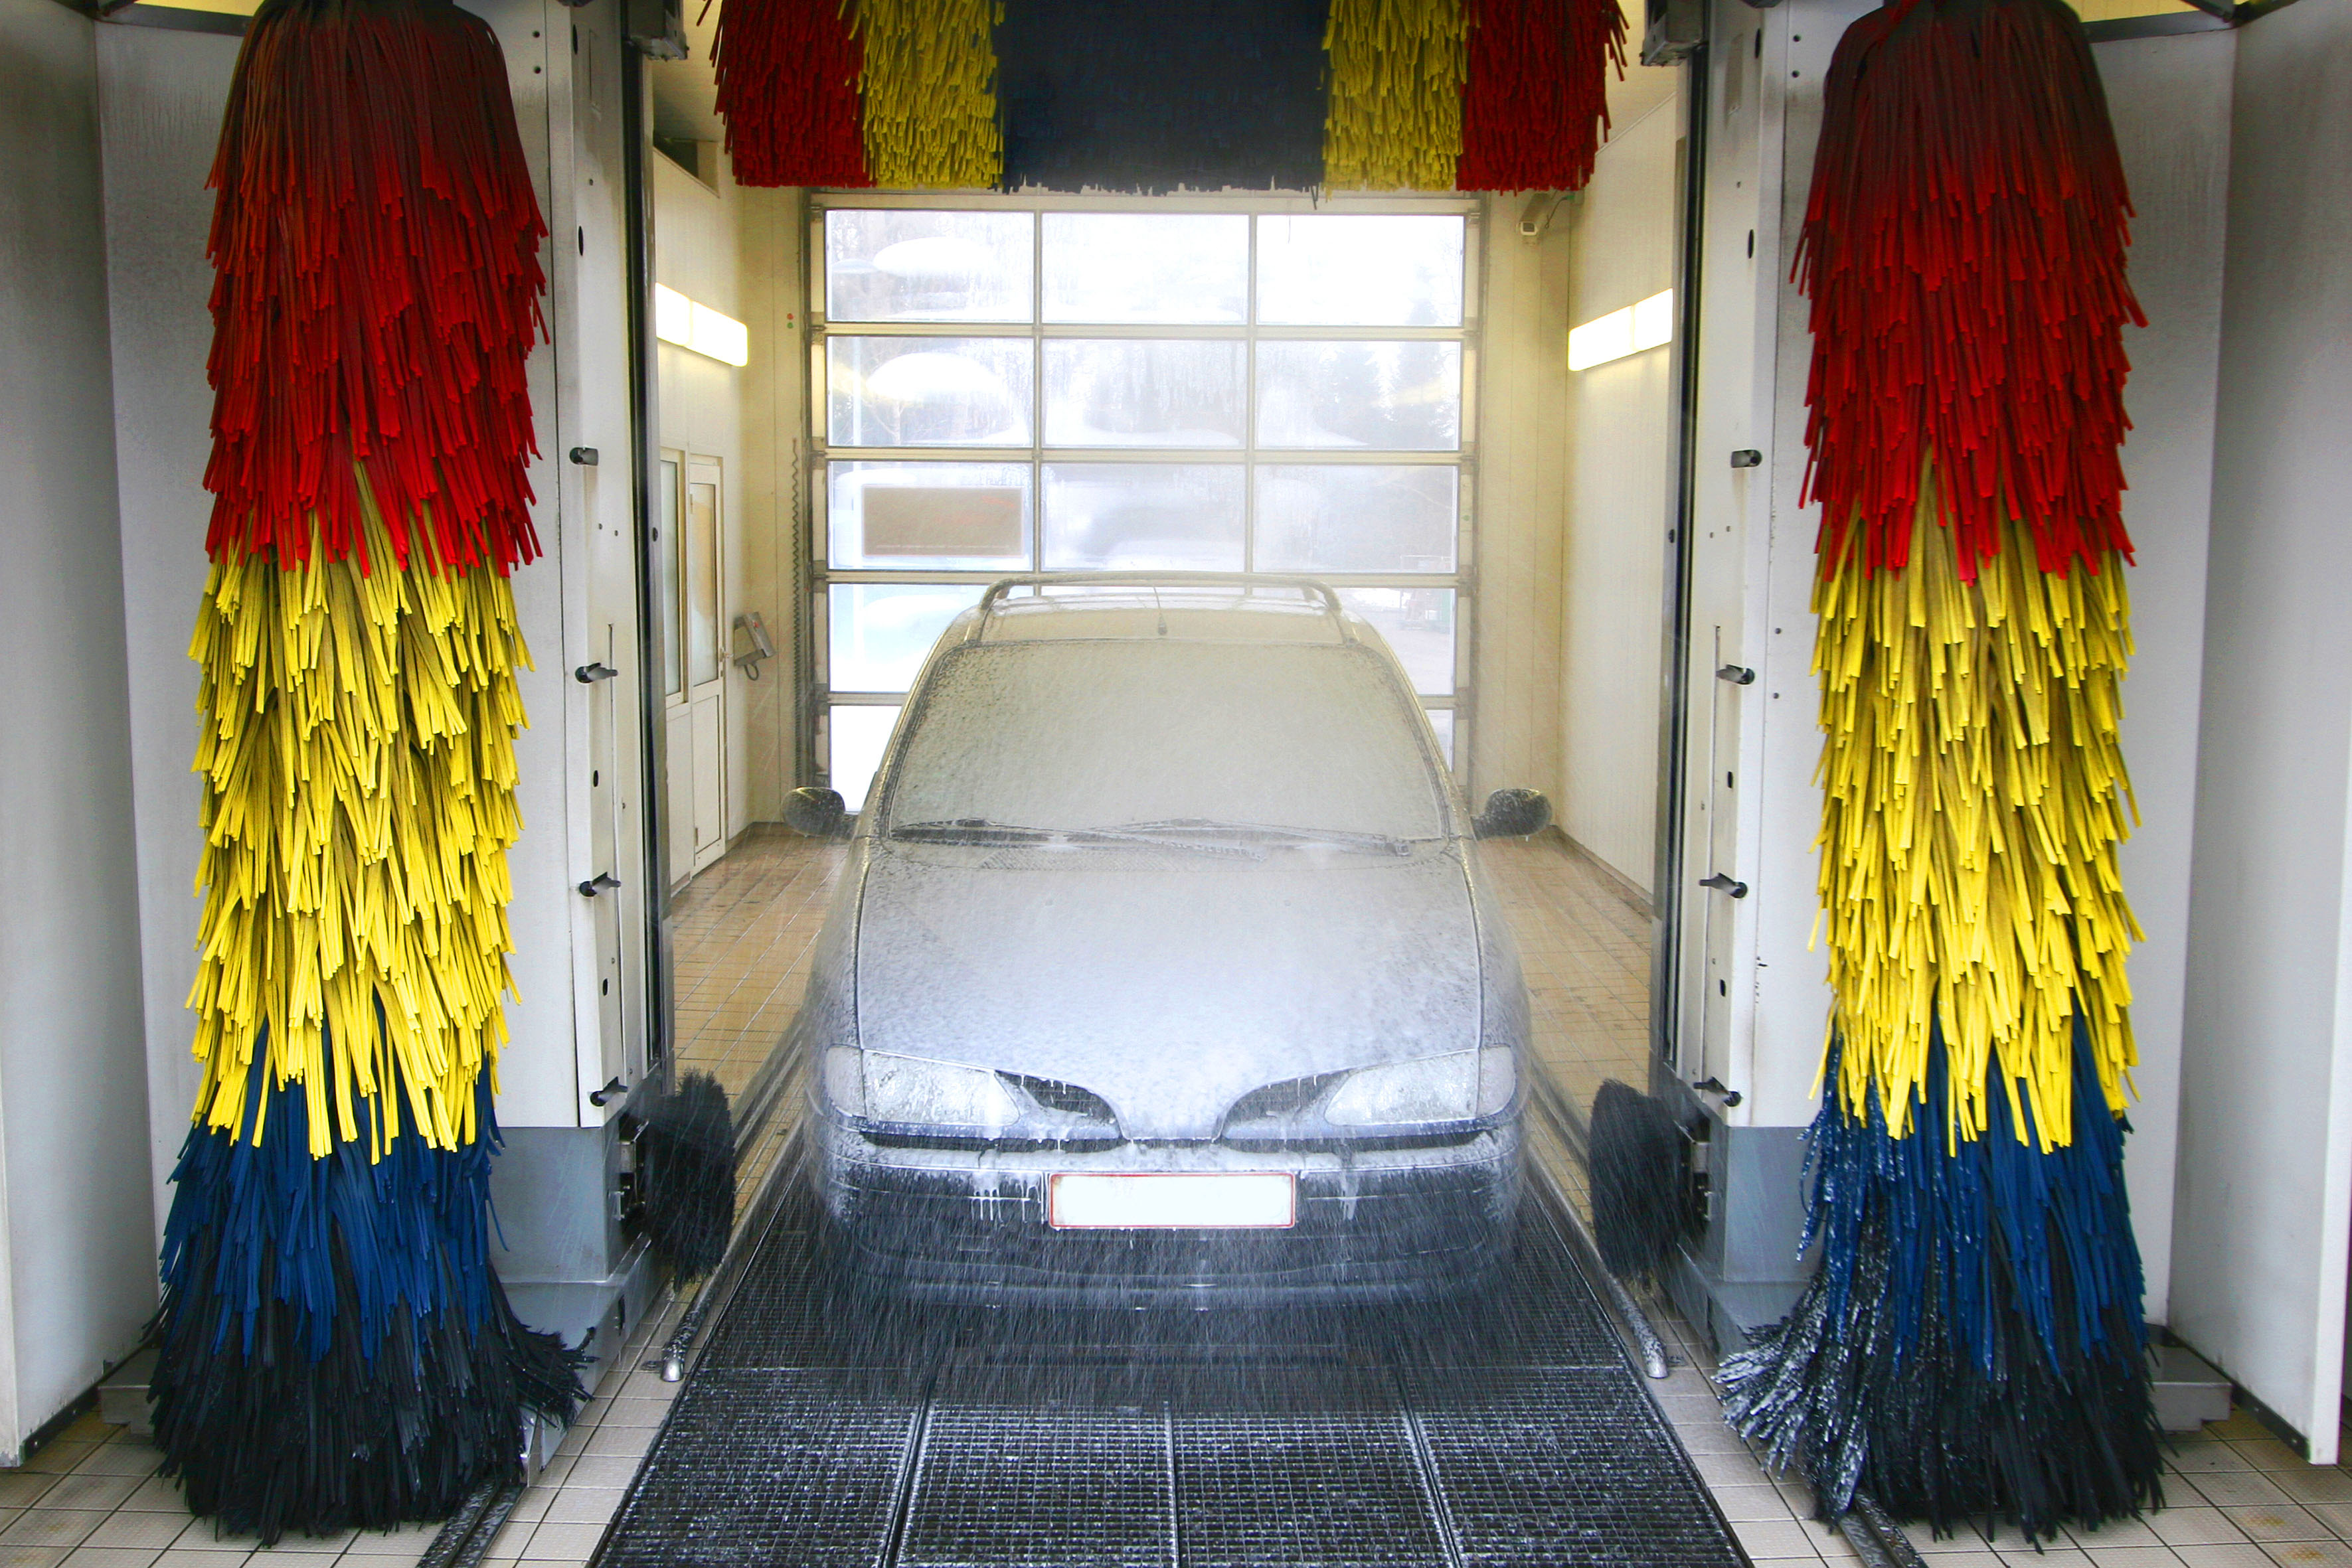 Do It Yourself Car Wash >> FRP Grating for Car Wash Facilities - National Grating